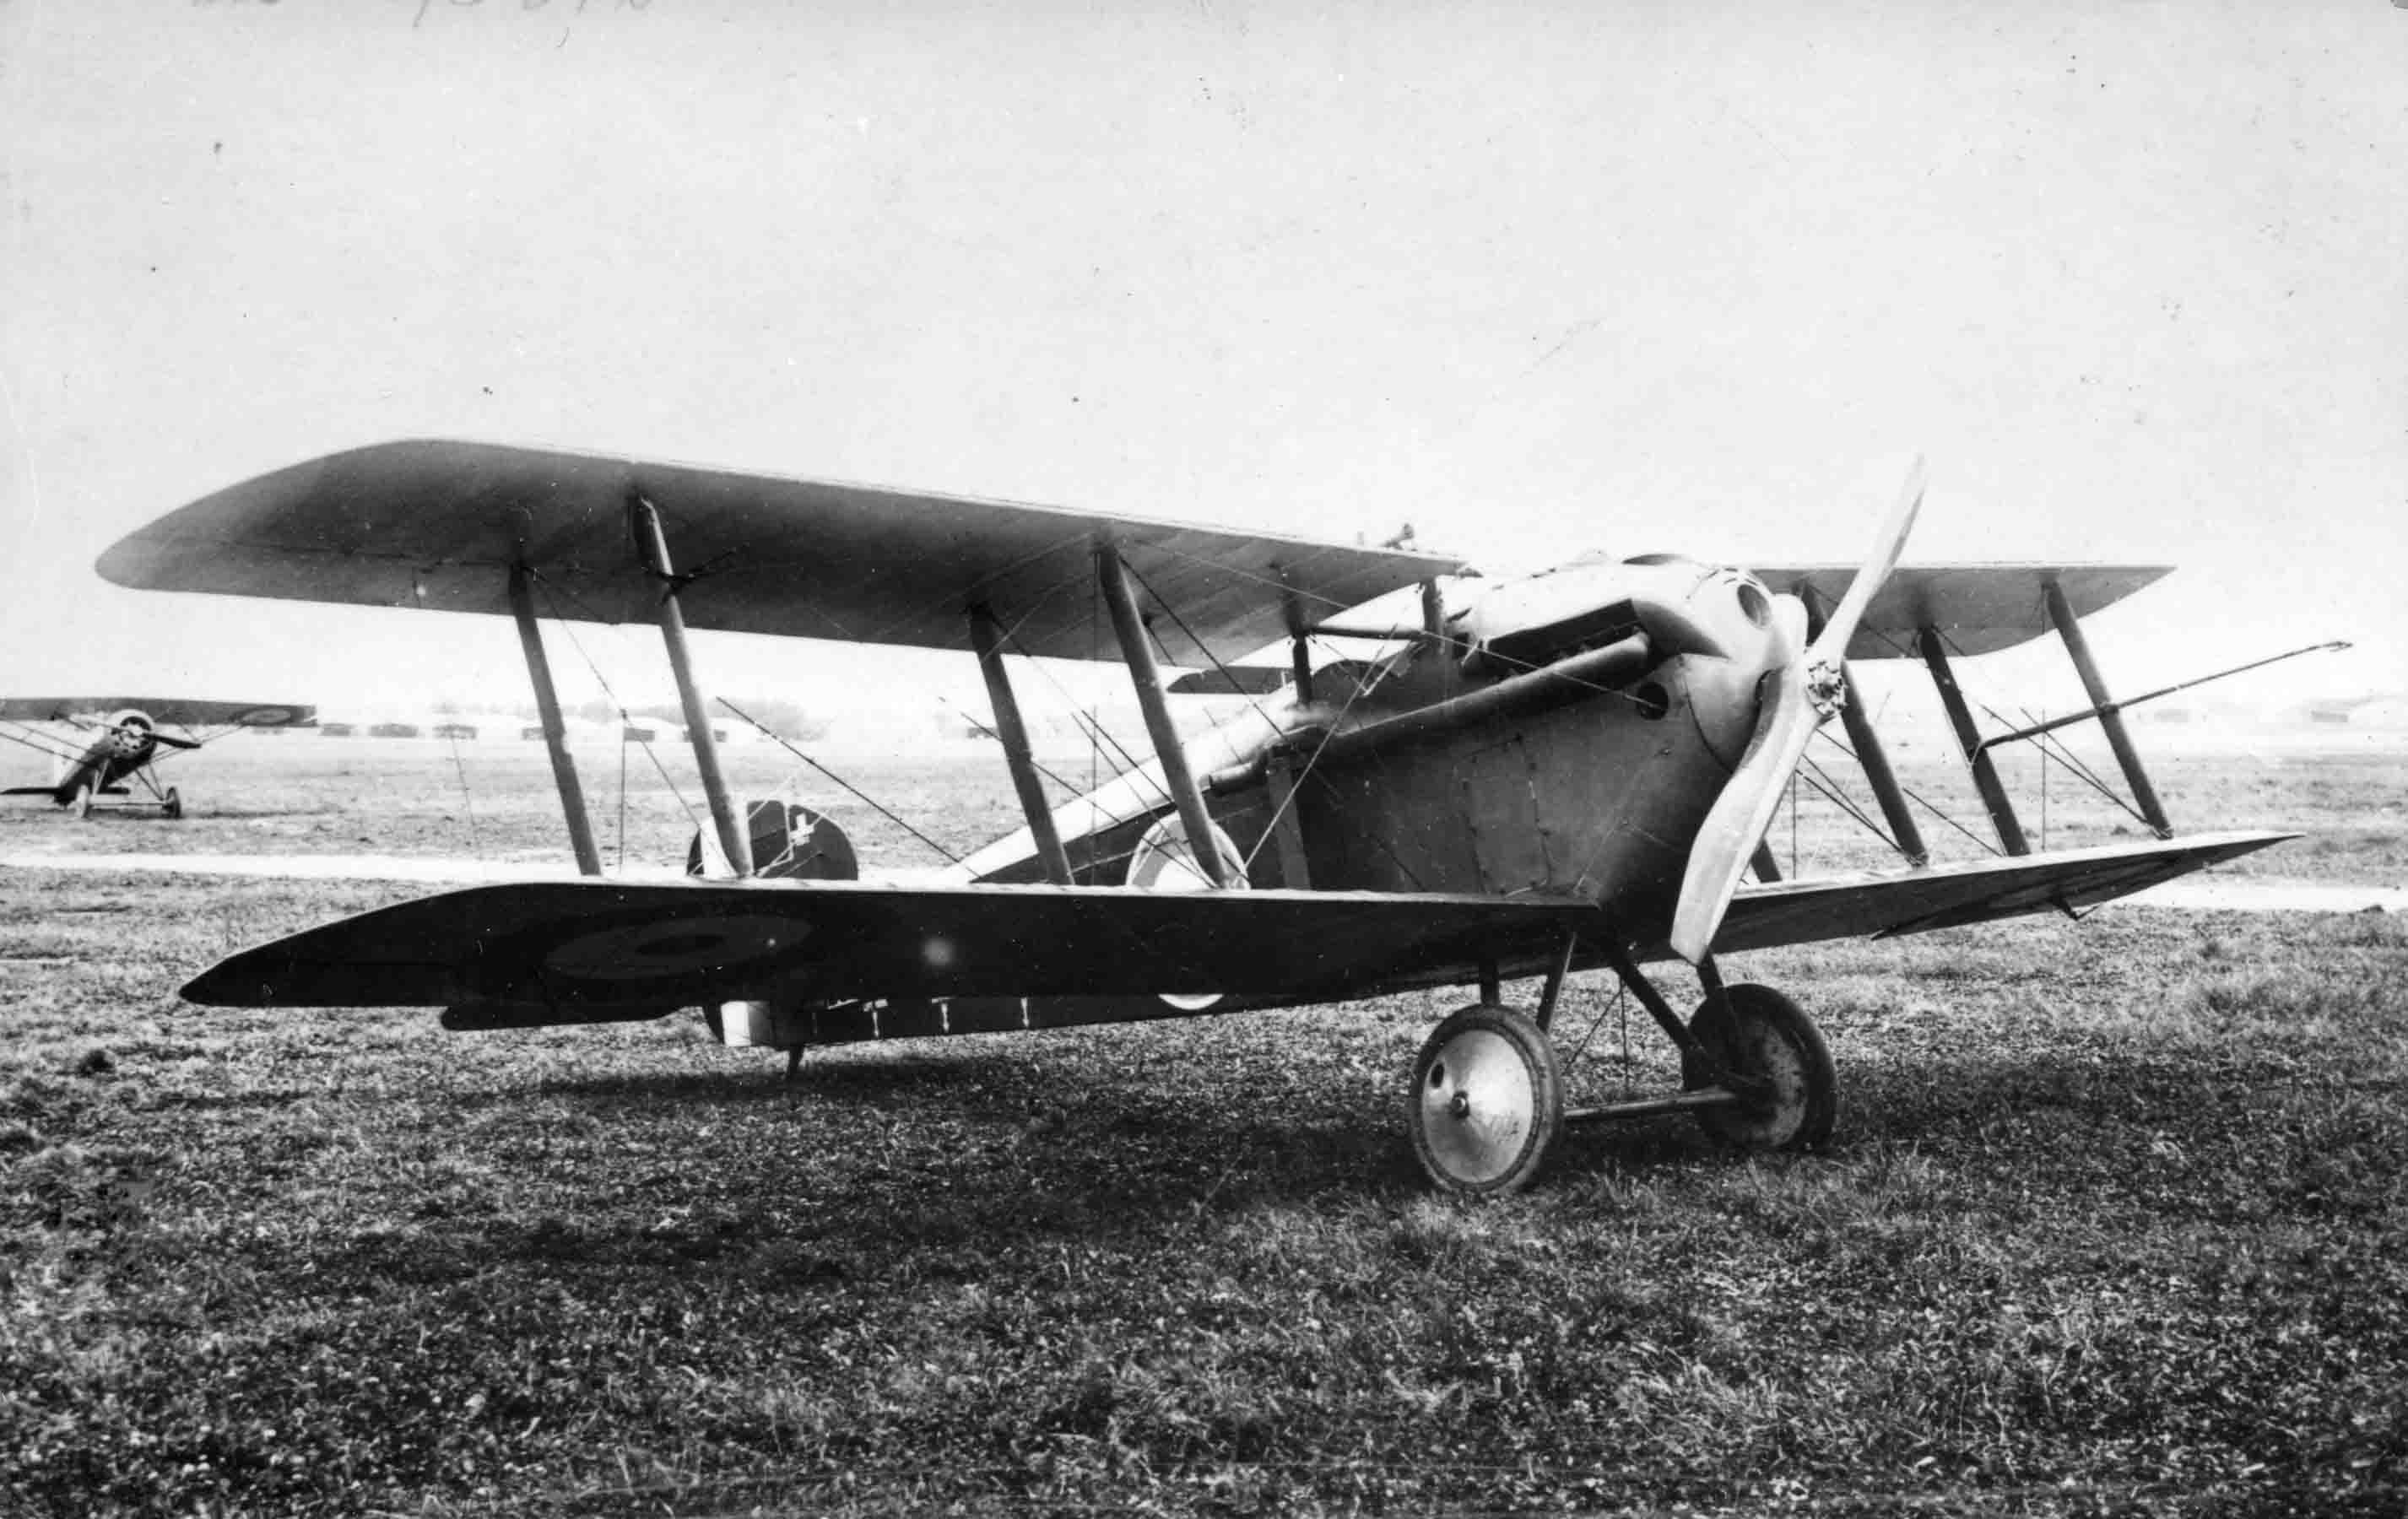 X003-2602-16119: Sopwith 5F.1 Dolphin II, serial D3615, Villacoublay, 1918.  This aircraft was transferred to the French government and was fitted with the 300hp Hispano-Suiza engine.  An air speed indicator was attached to the port outer interplane struts.  A Morane-Saulnier AI can be seen in the background.